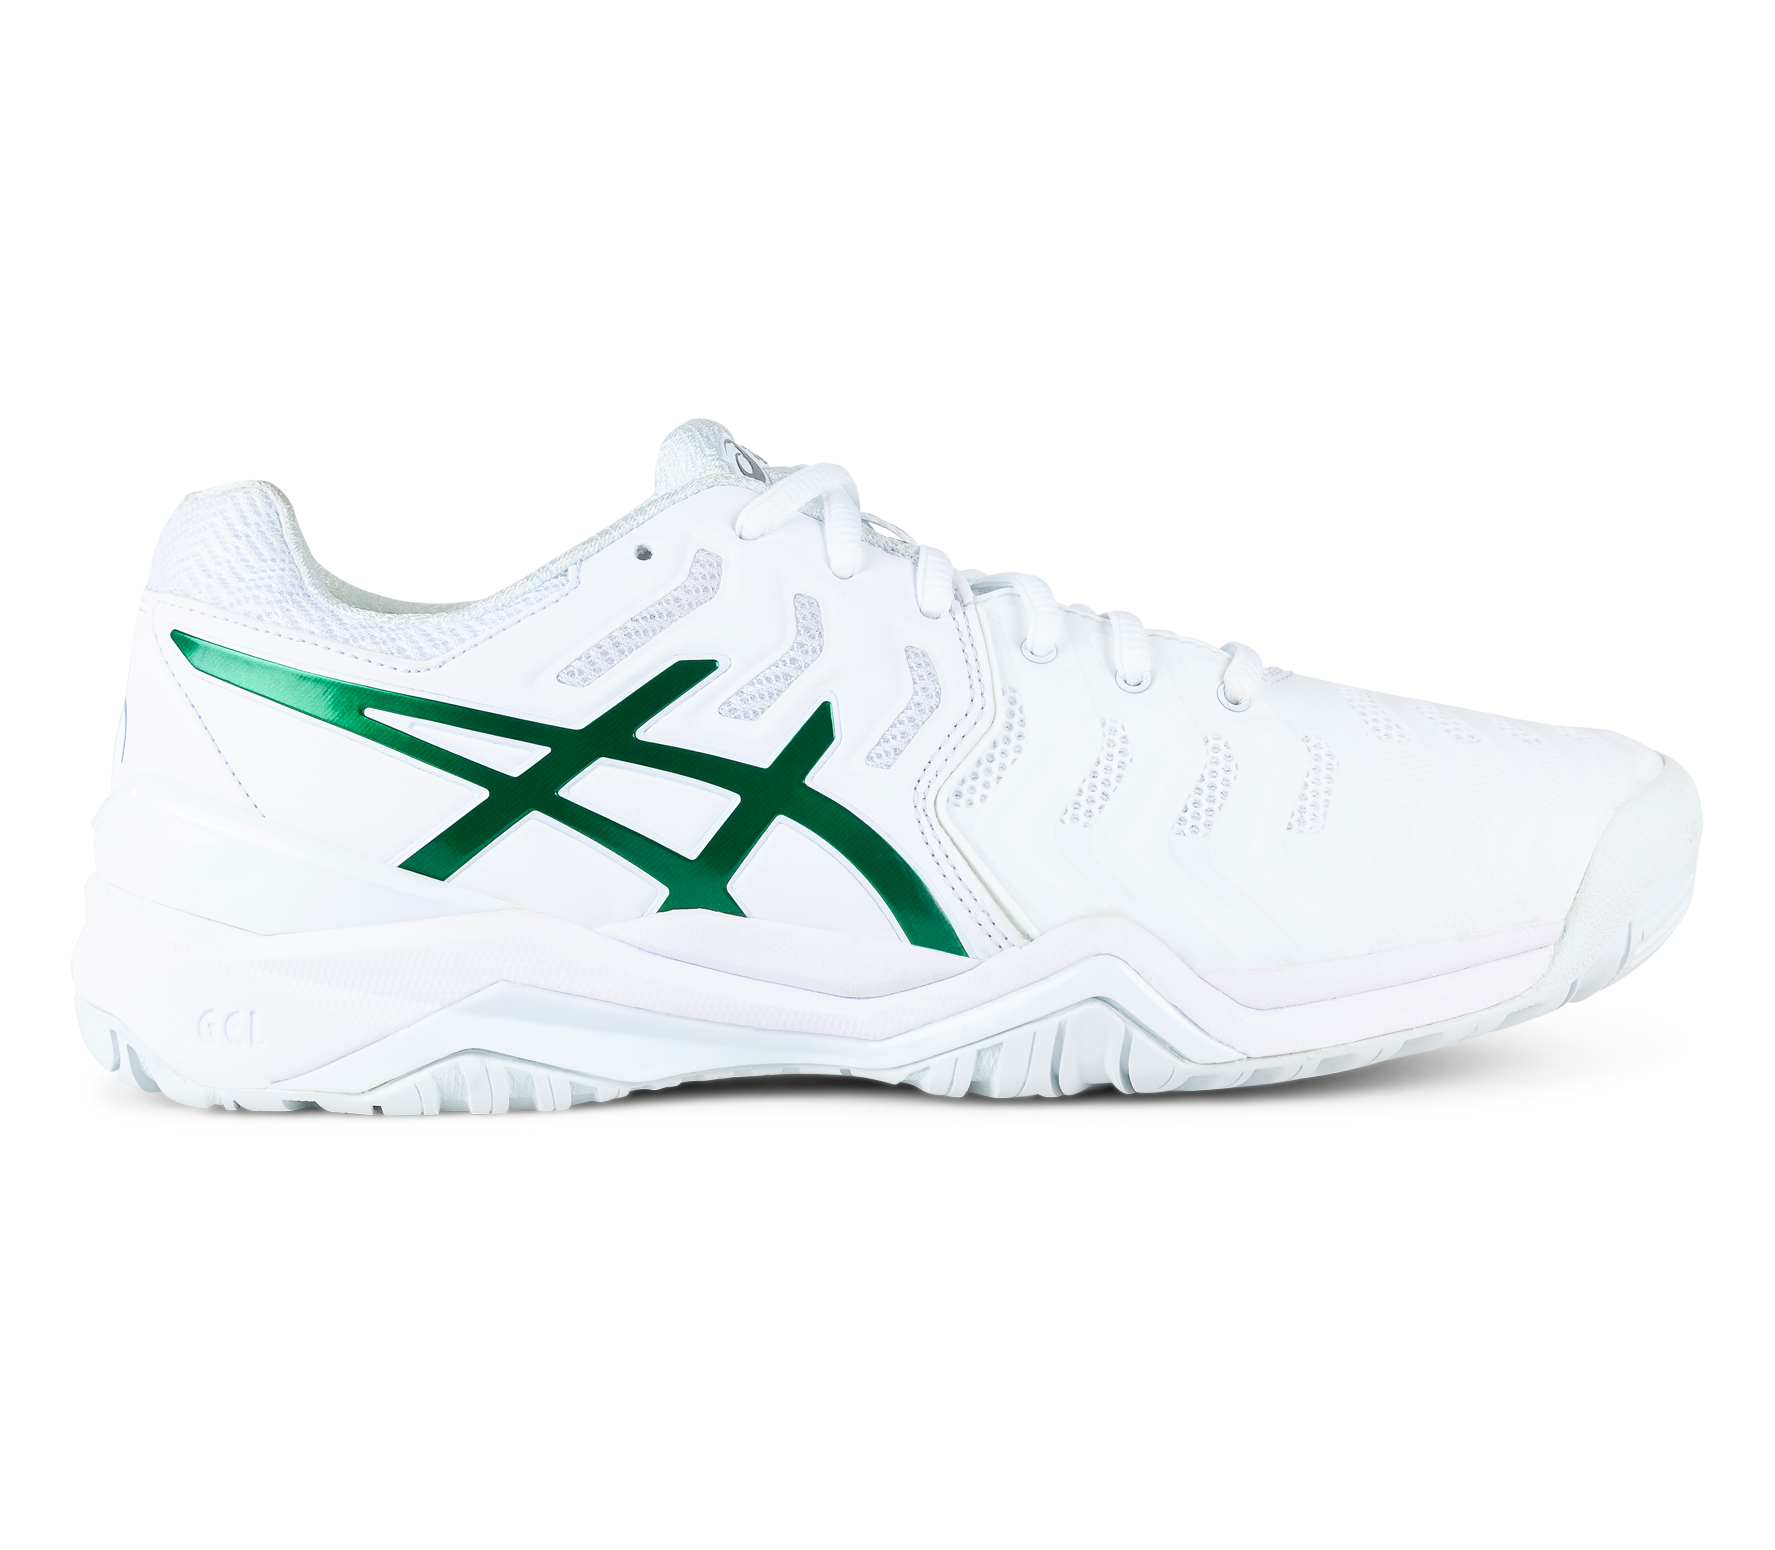 asics gel resolution 7 novak wimbledon men's shoes